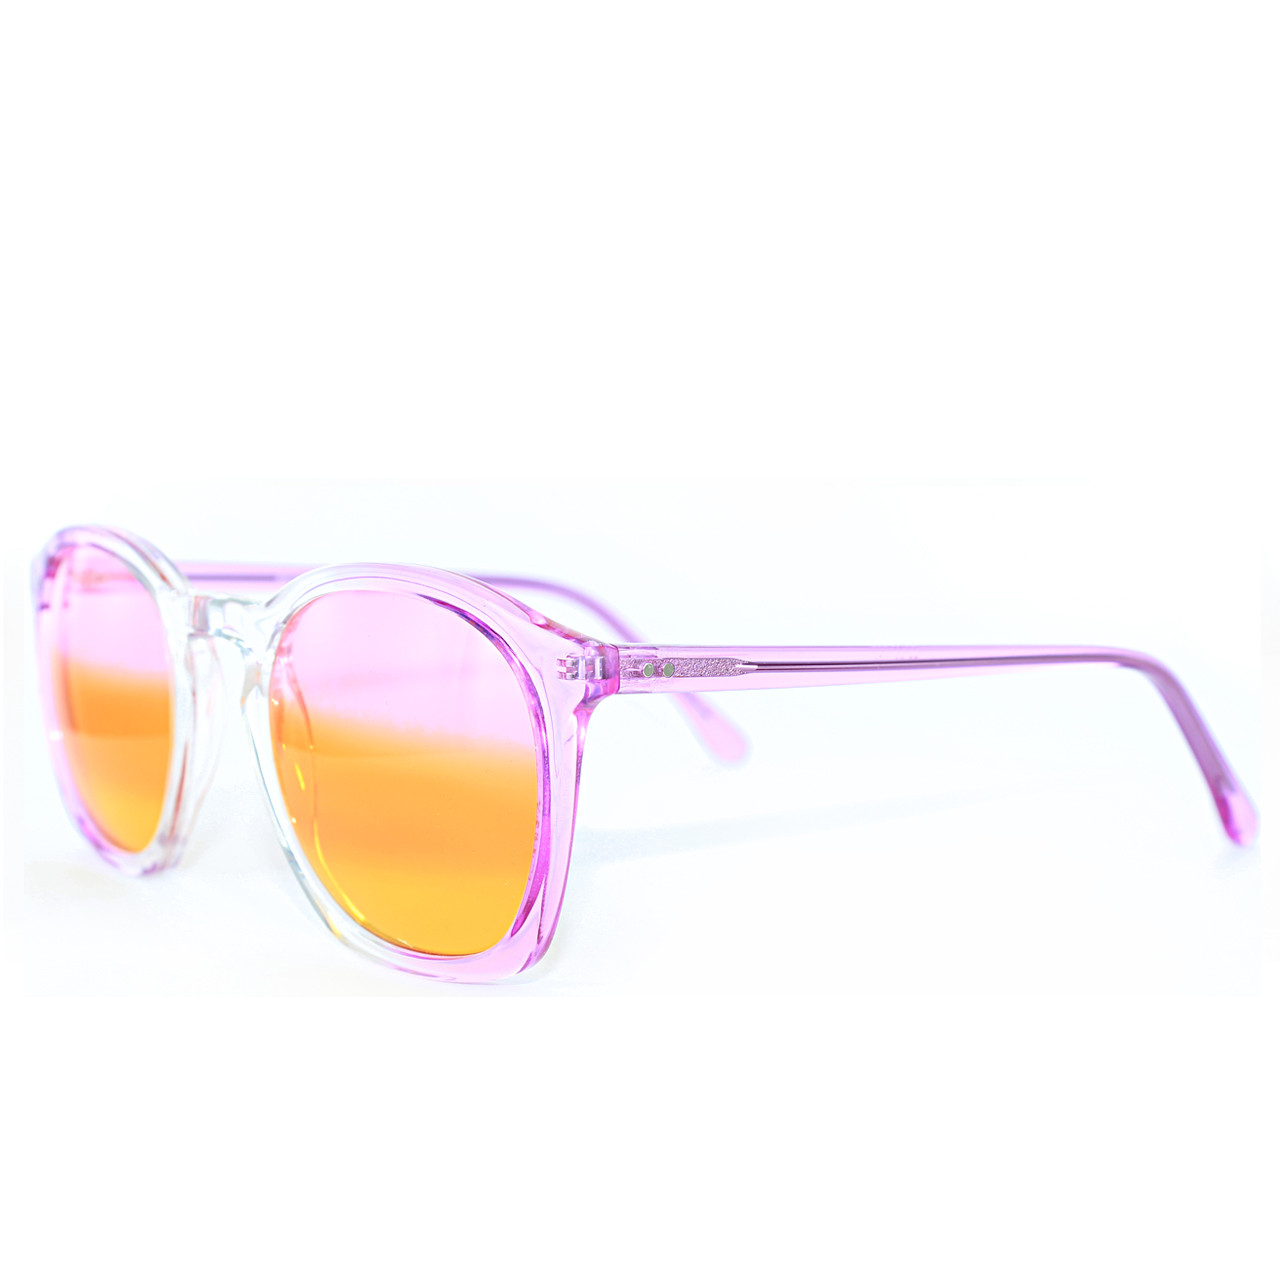 GEEK COUTURE style 4 Sunglasses